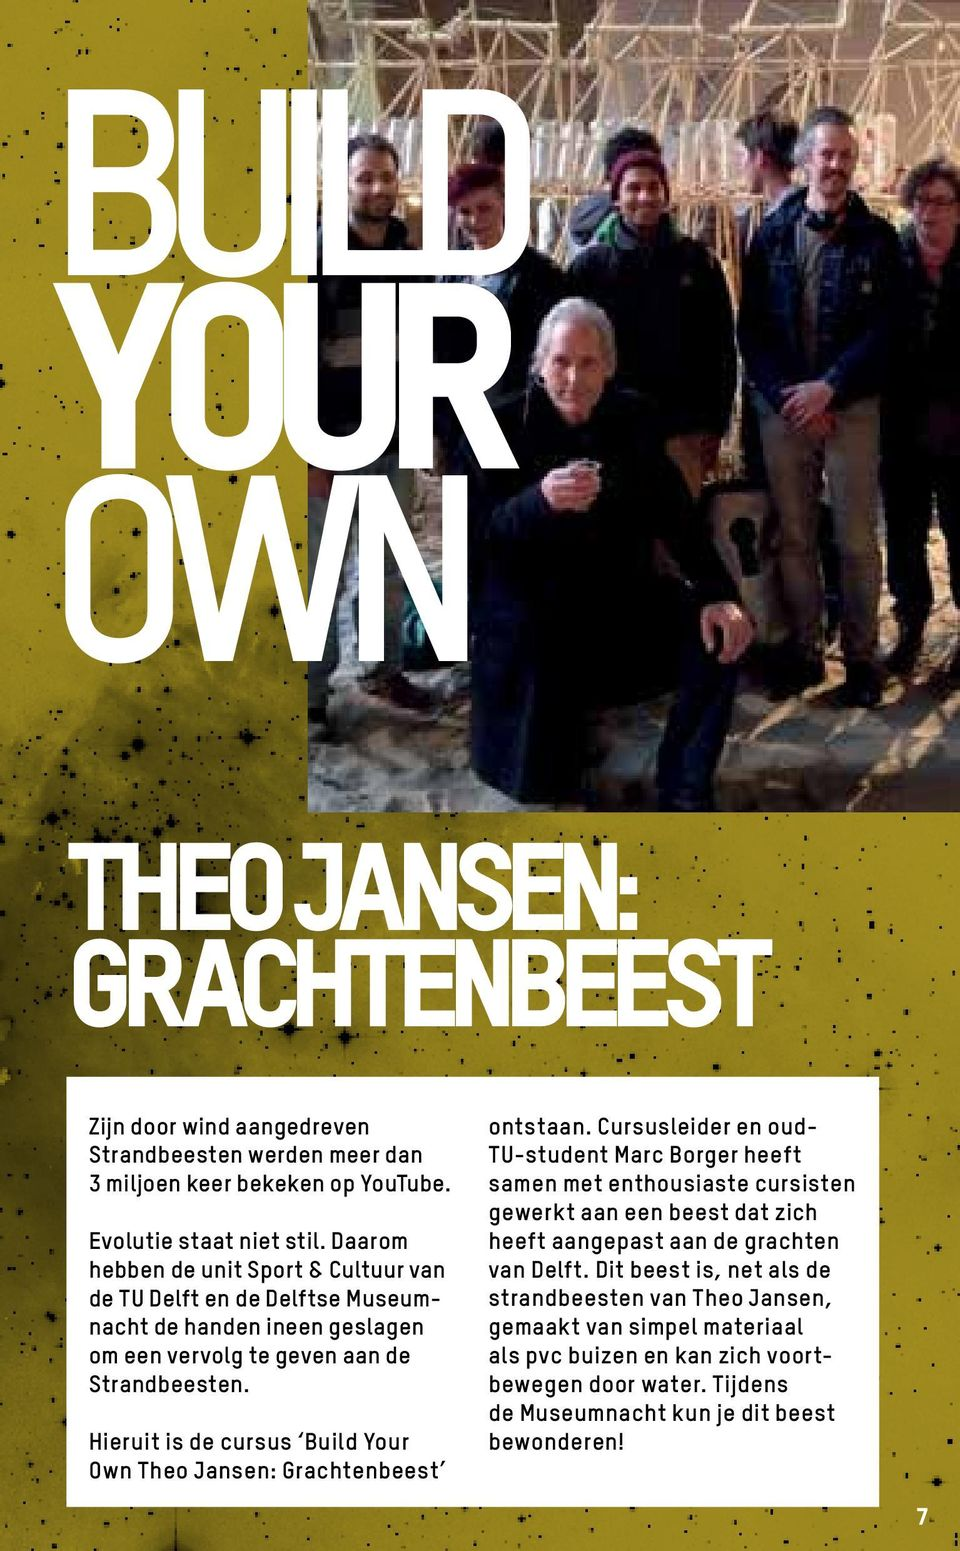 Hieruit is de cursus Build Your Own Theo Jansen: Grachtenbeest ontstaan.